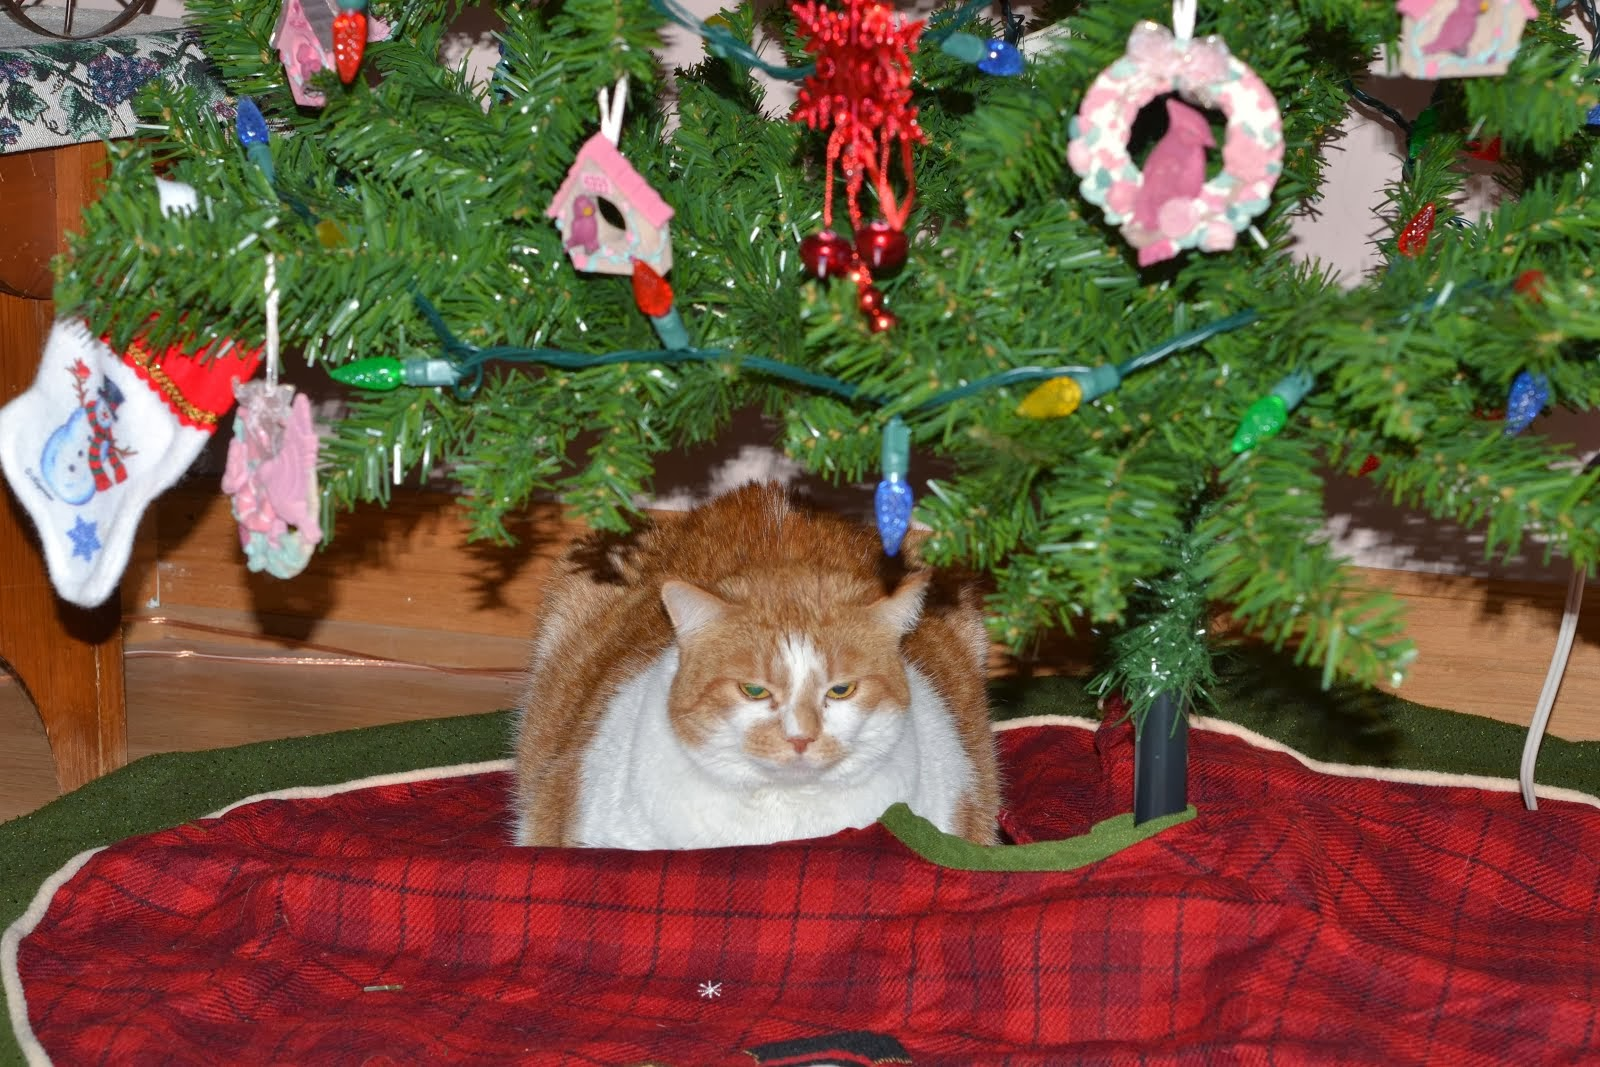 HARLEY UNDER THE TREE